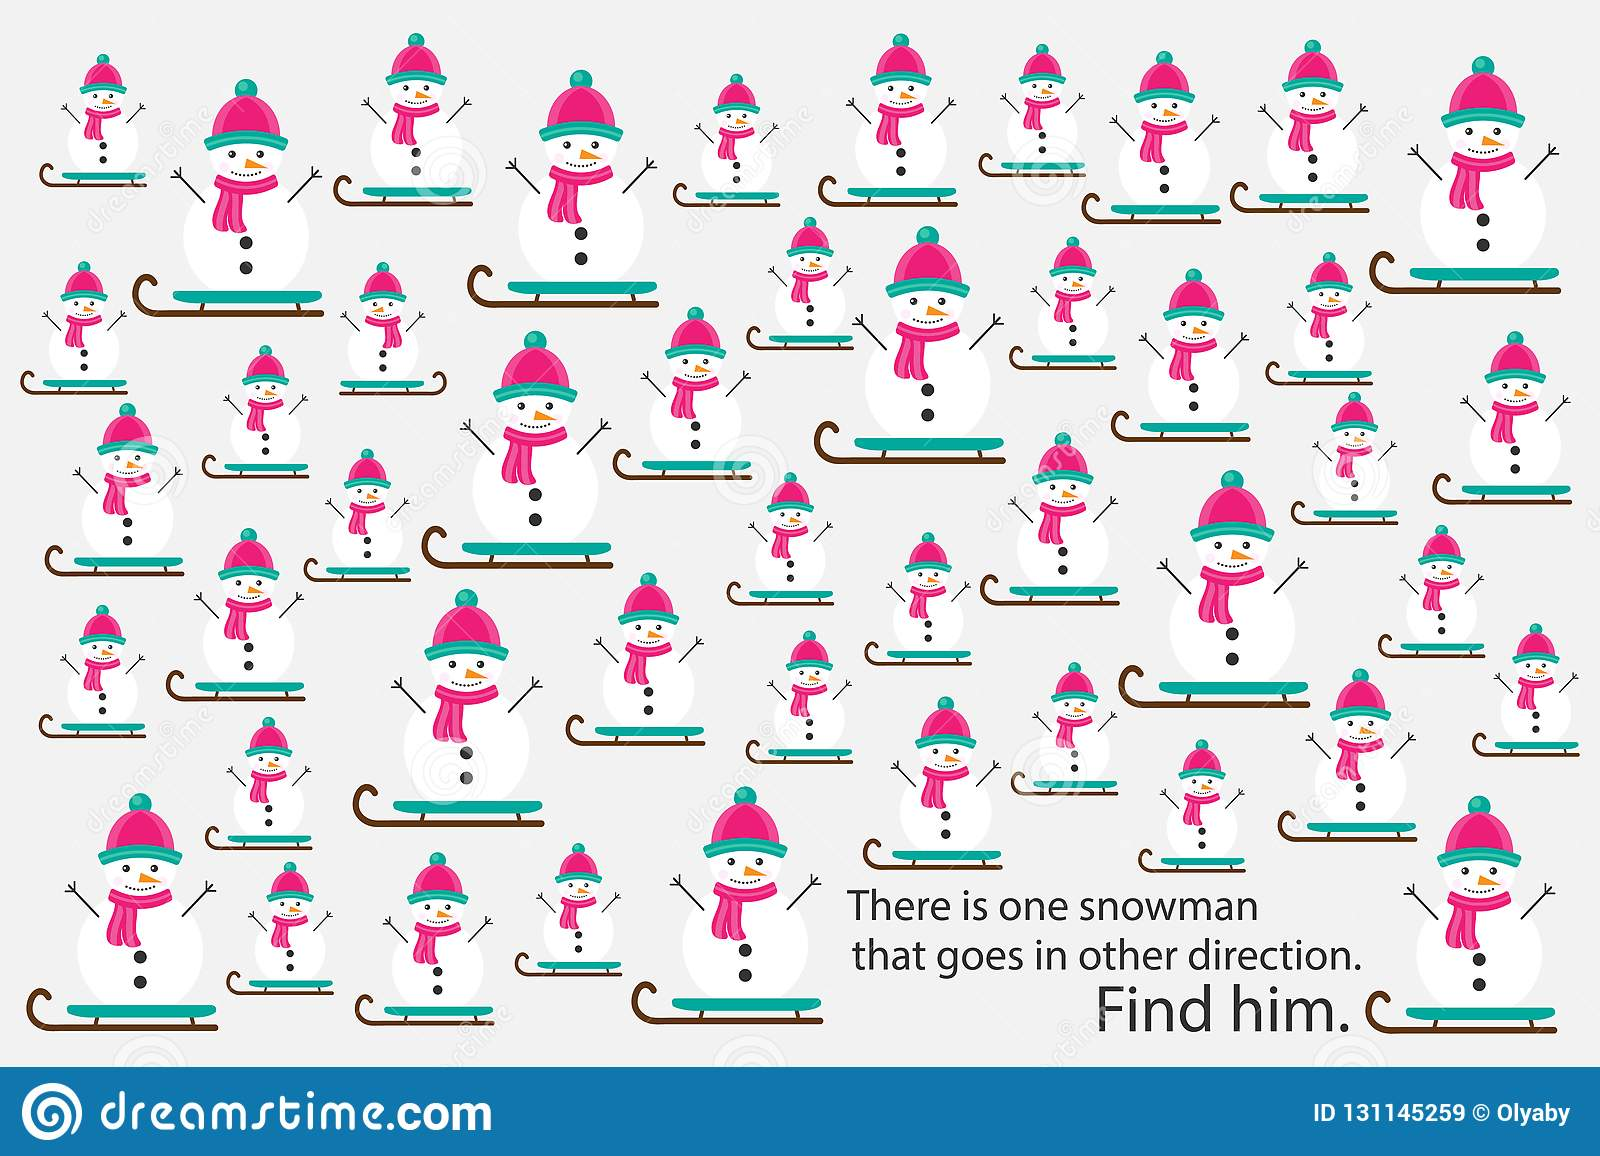 Find Snowman That Goes In Other Direction Xmas Education